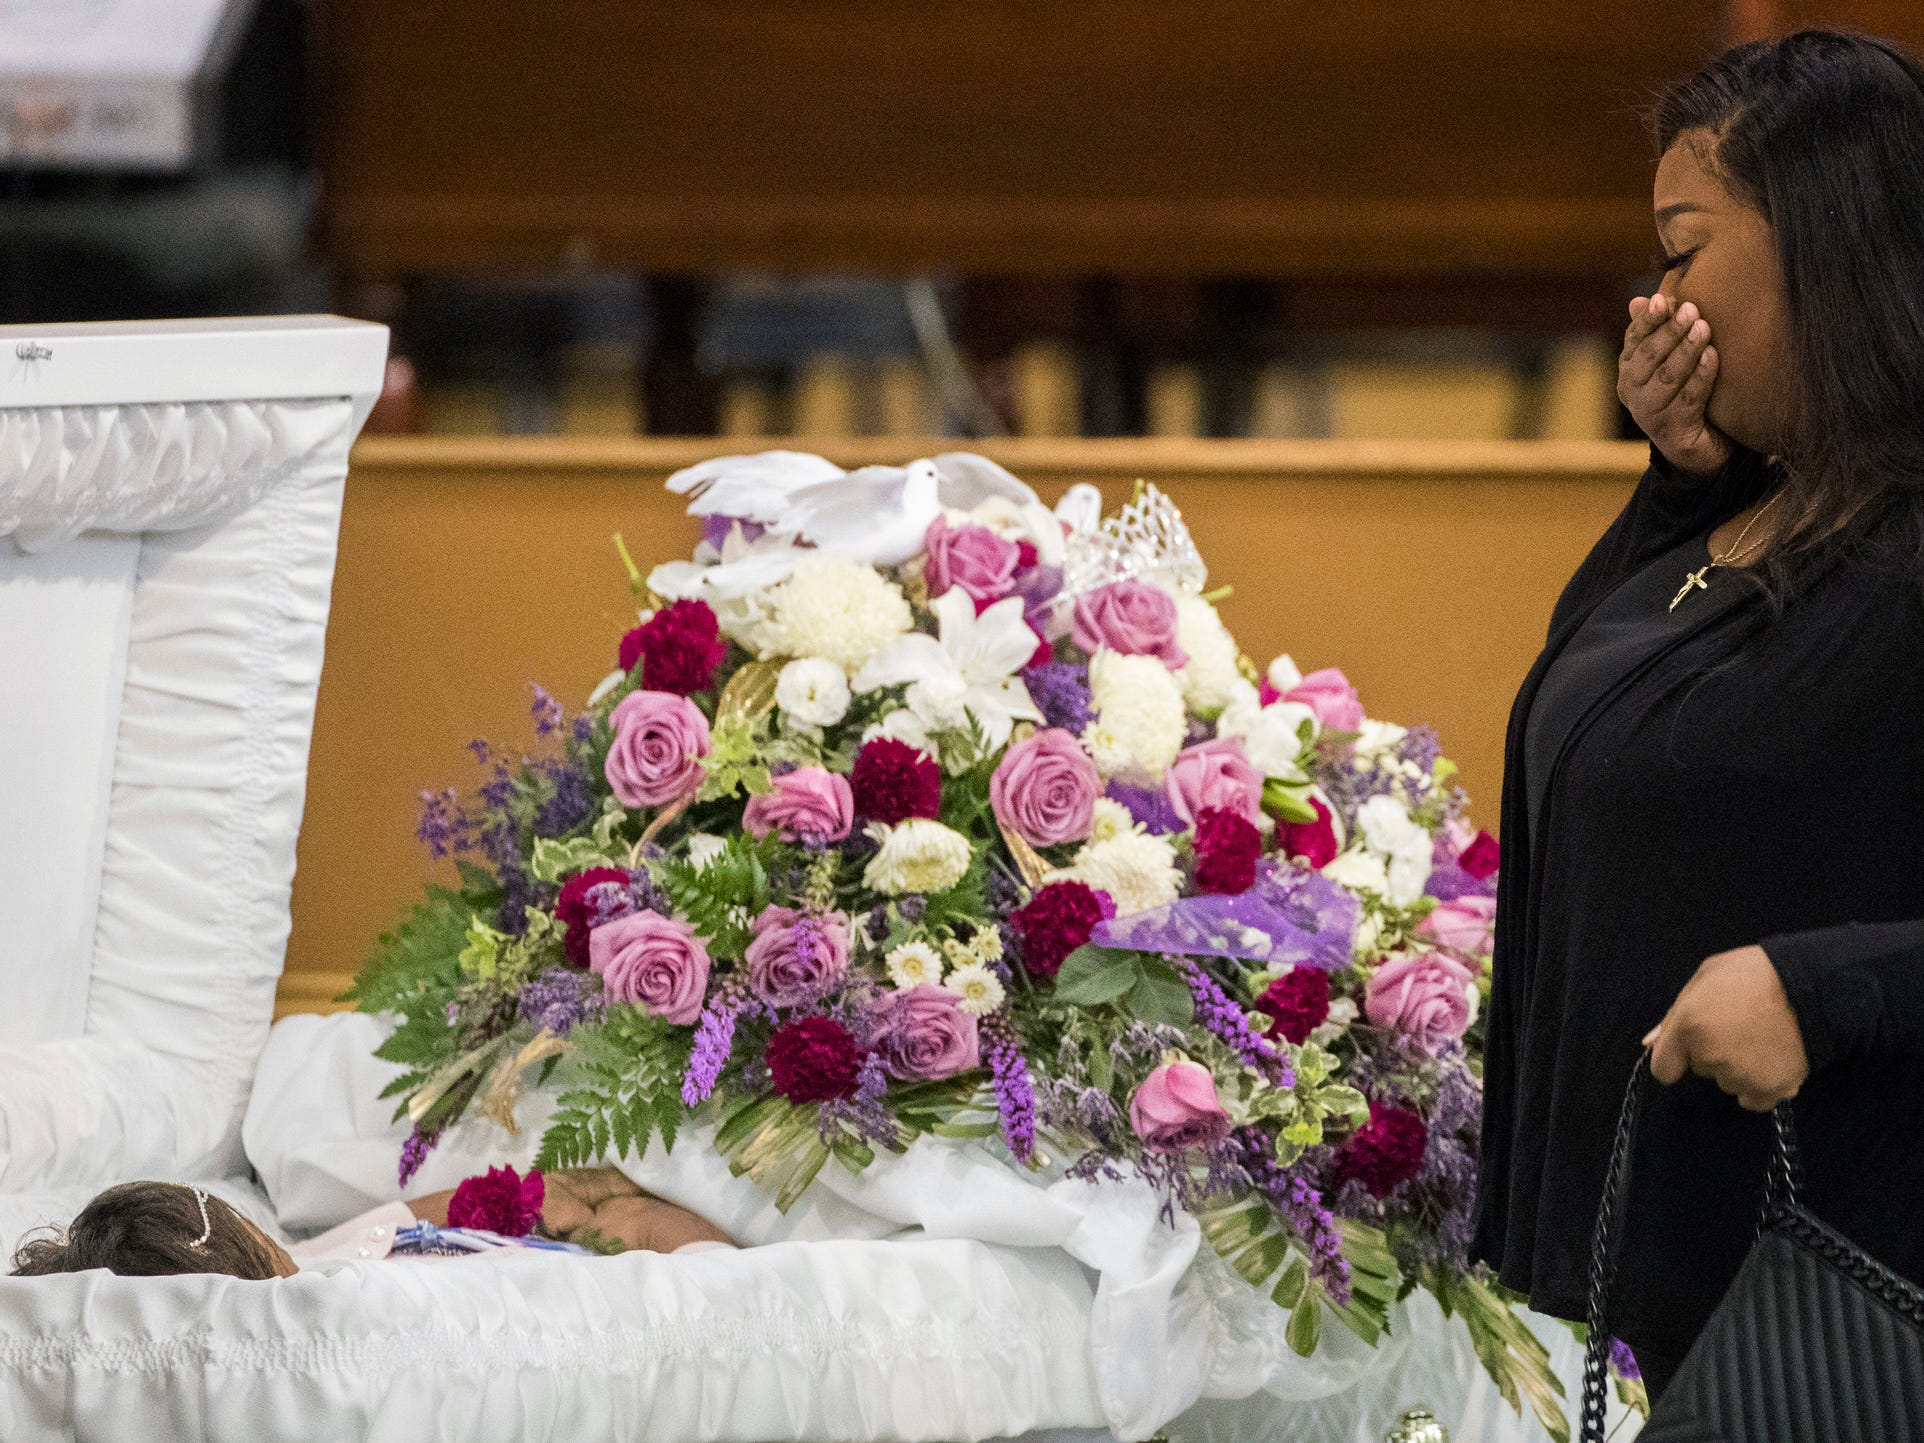 A mourner approaches the casket of Jazmine Barnes during a viewing ceremony before the memorial service.